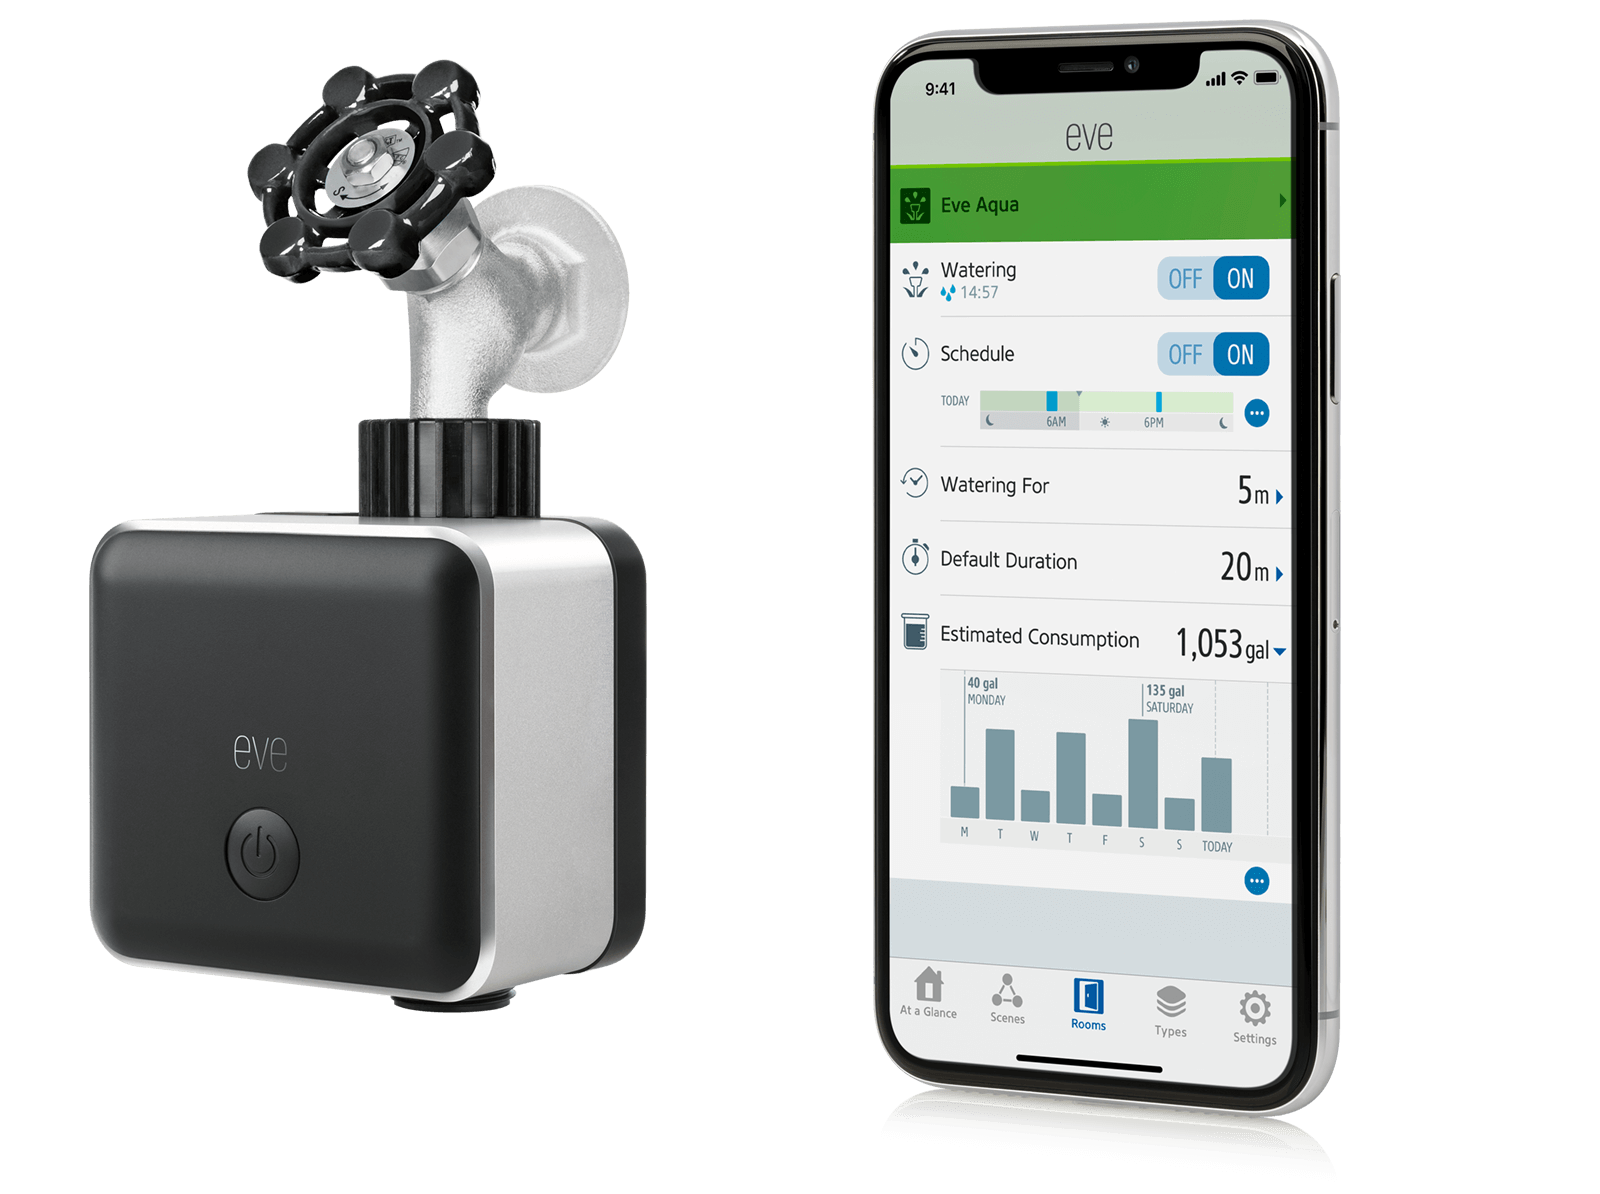 Eve Aqua Garden Timer With Remote Control Learn More